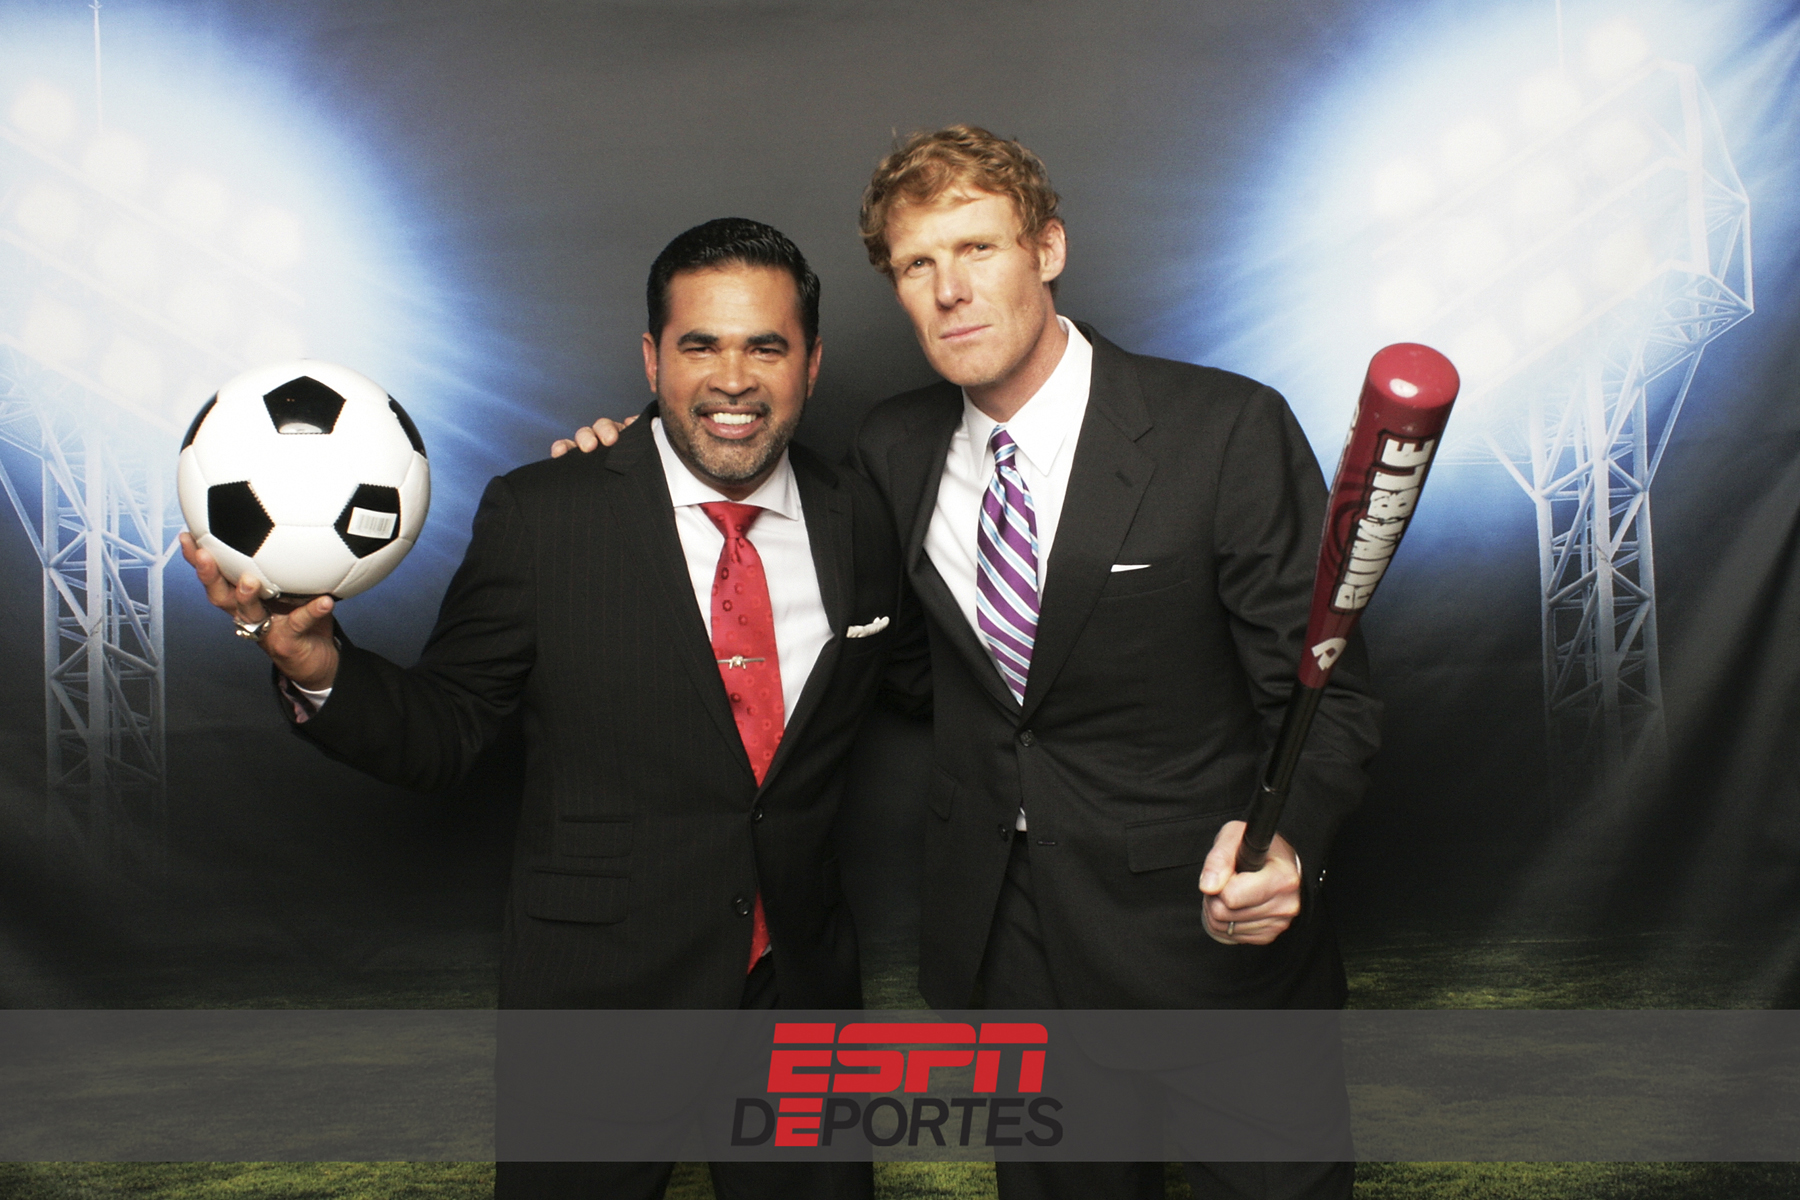 The Booth Photo Video ESPN Deportes